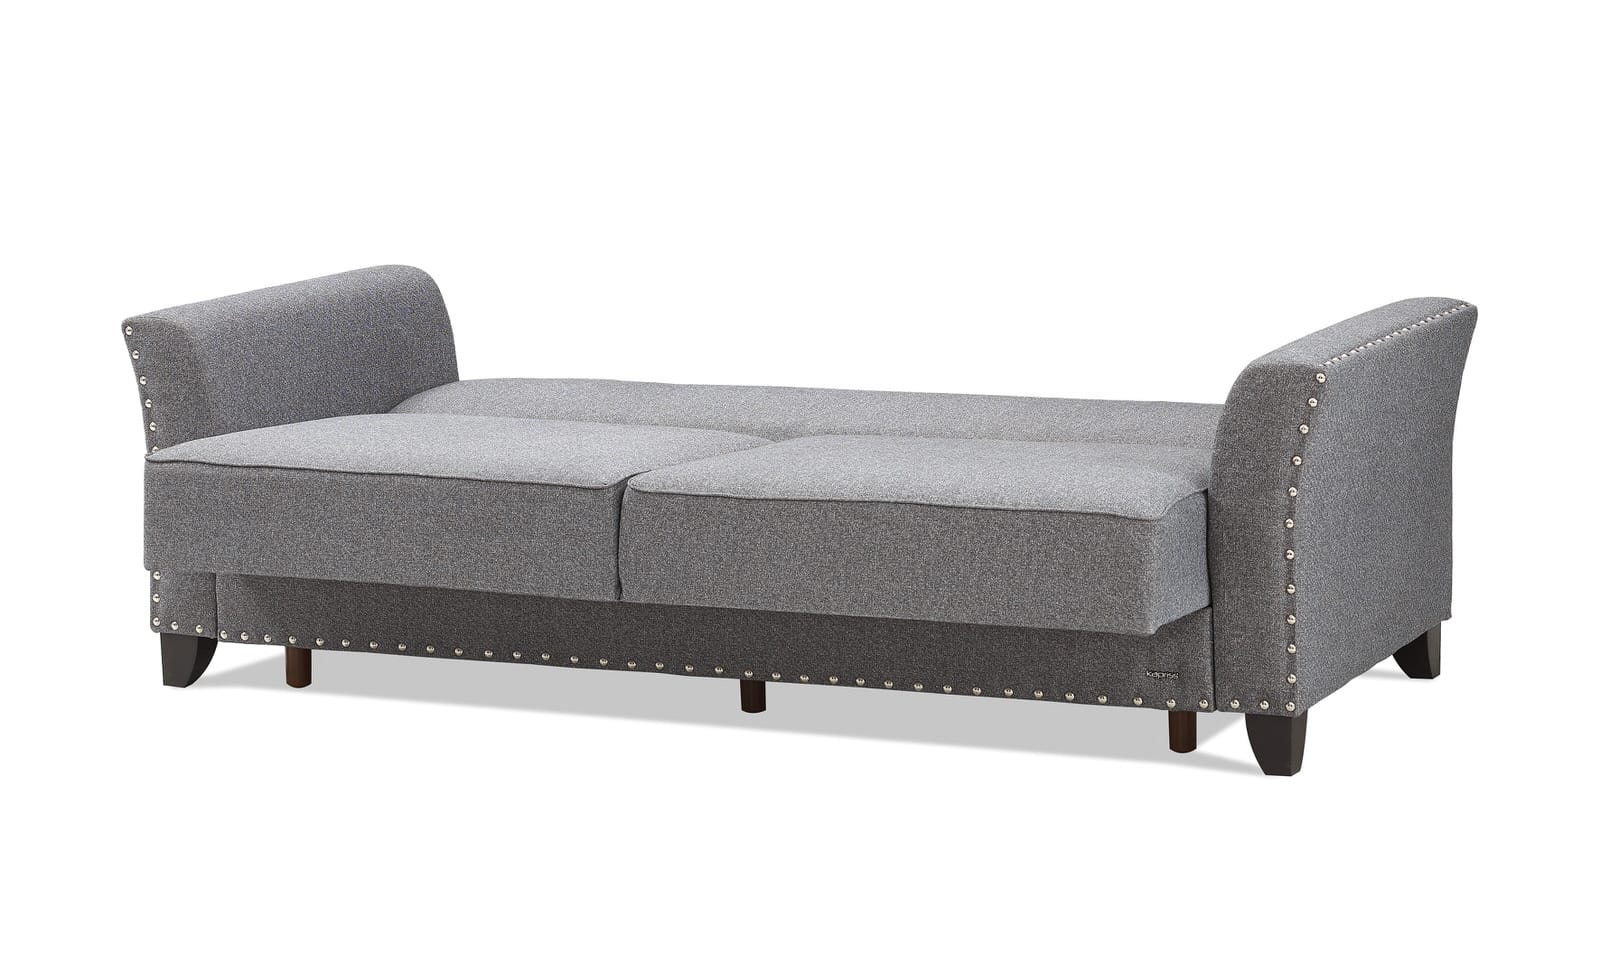 Ashley Gray Chenille Convertible Loveseat by Casamode